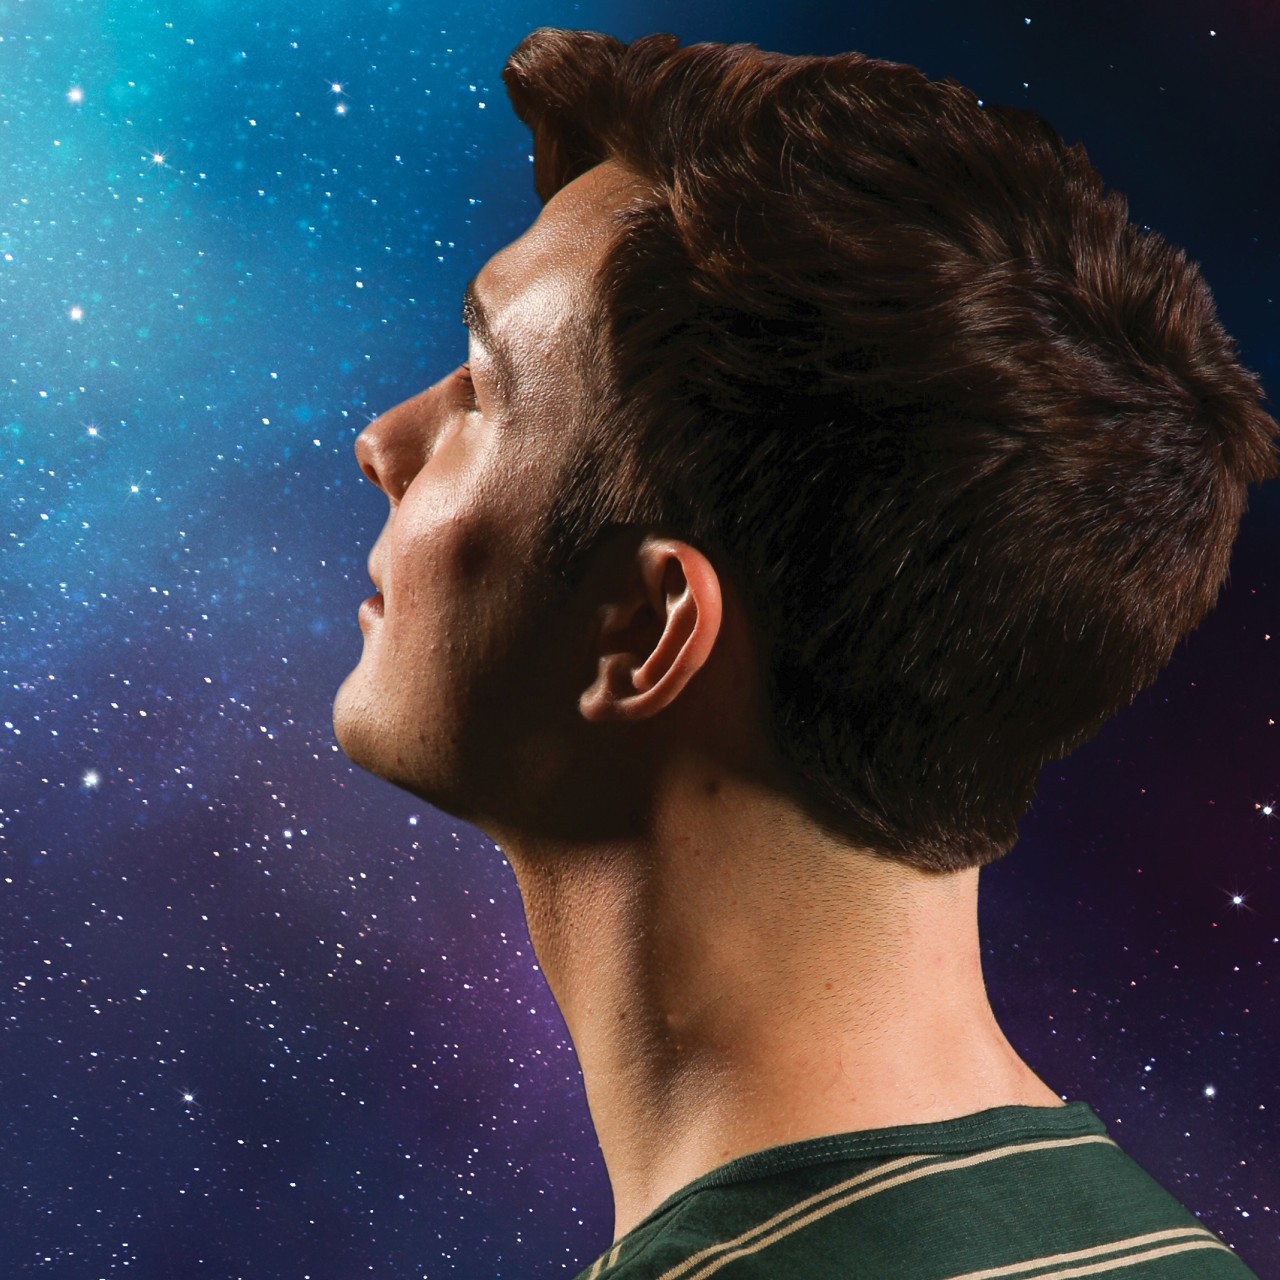 A young man stares into the night sky in a promotional image for the play 'The Curious Incident of the Dog in the Night-Time.' Photo by Mark Lyons.